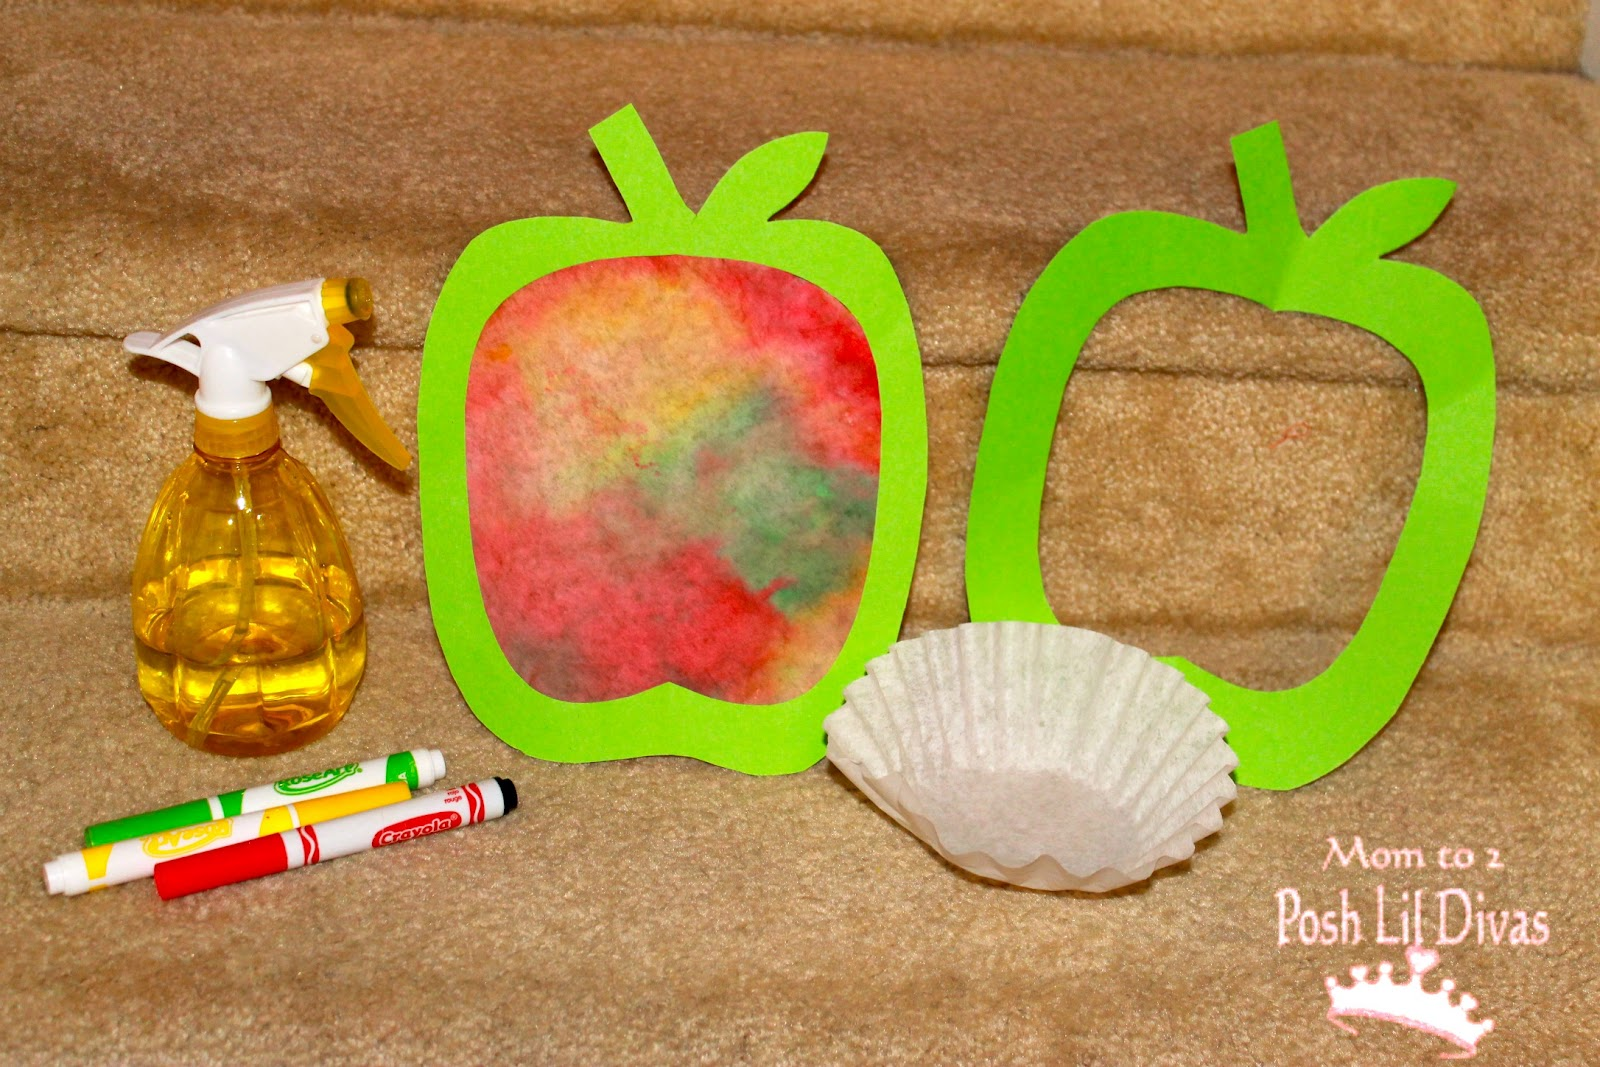 Fall Christian Crafts Toddlers http://www.momto2poshlildivas.com/2012/09/fall-crafts-coffee-filter-apple-art-for.html